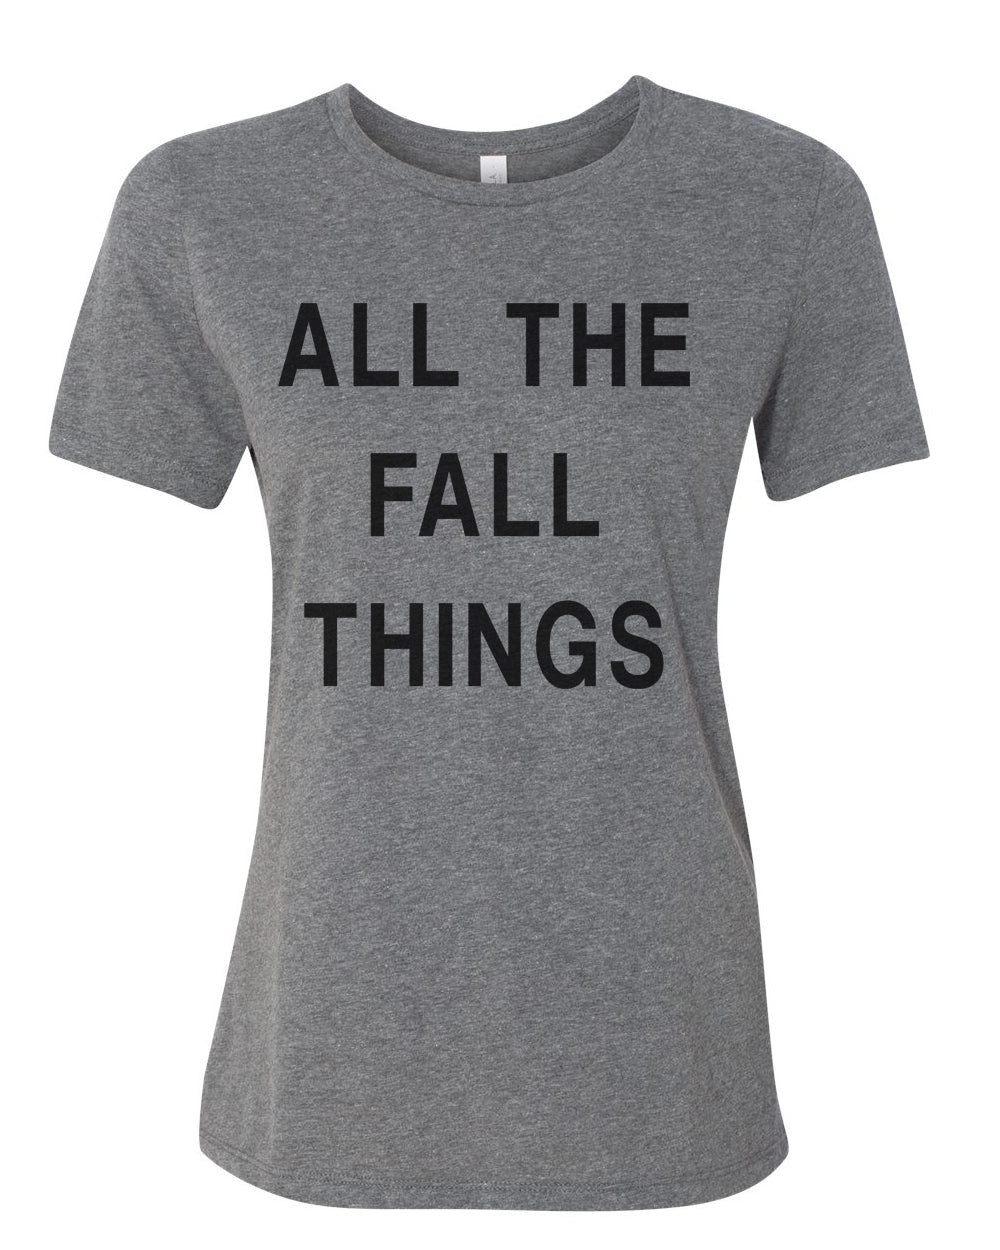 All The Fall Things Relaxed Women's T Shirt